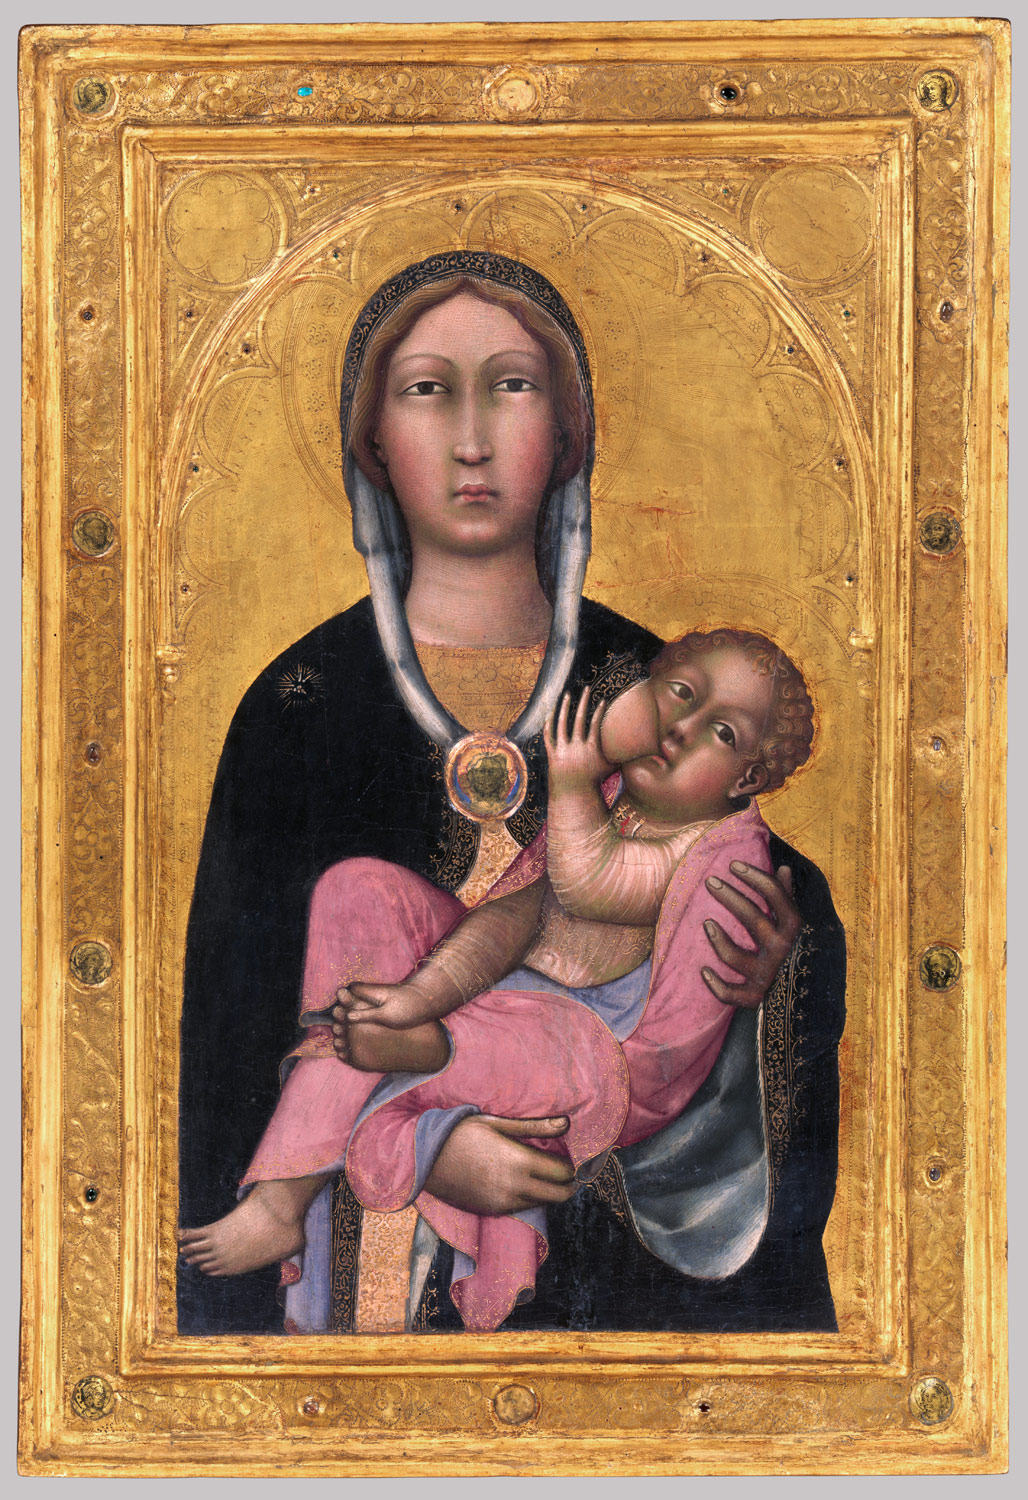 Madonna and Child, by Paolo di Giovanni Fei, c.1370s, from  https://www.metmuseum.org/toah/works-of-art/41.190.13/